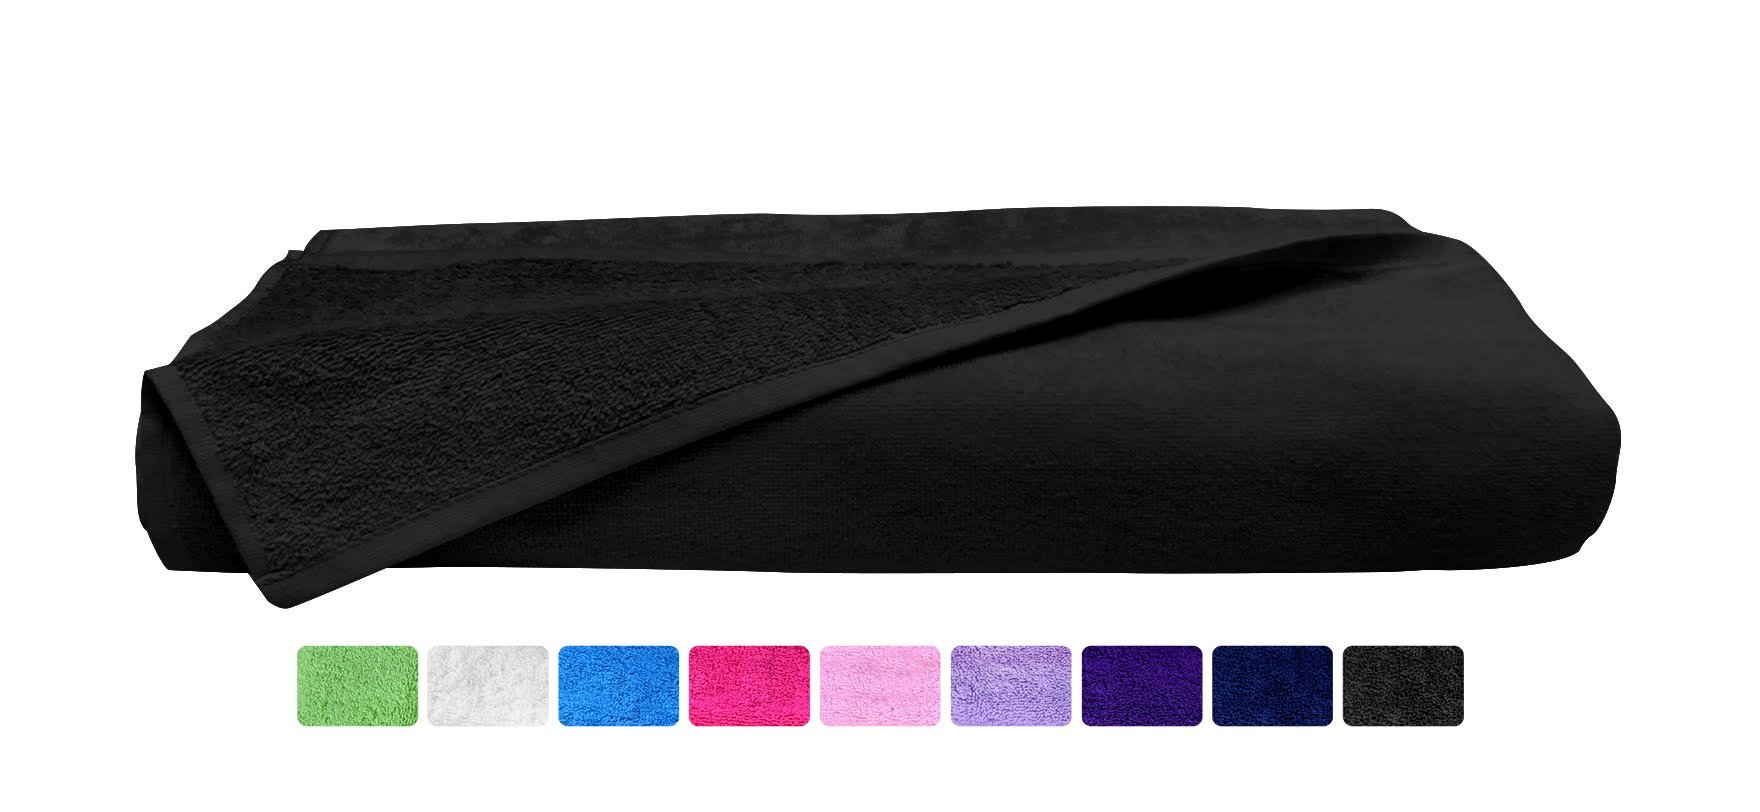 Beach Towel - Extra Large - Black - %100 Soft Turkish Cotton ( 35'' x 59'' ) ( Hotel Spa Bath Collection ) - Absorbent, Quick-Dry Eco Friendly (Black, Pack of 4 Towels) by Bath Supply